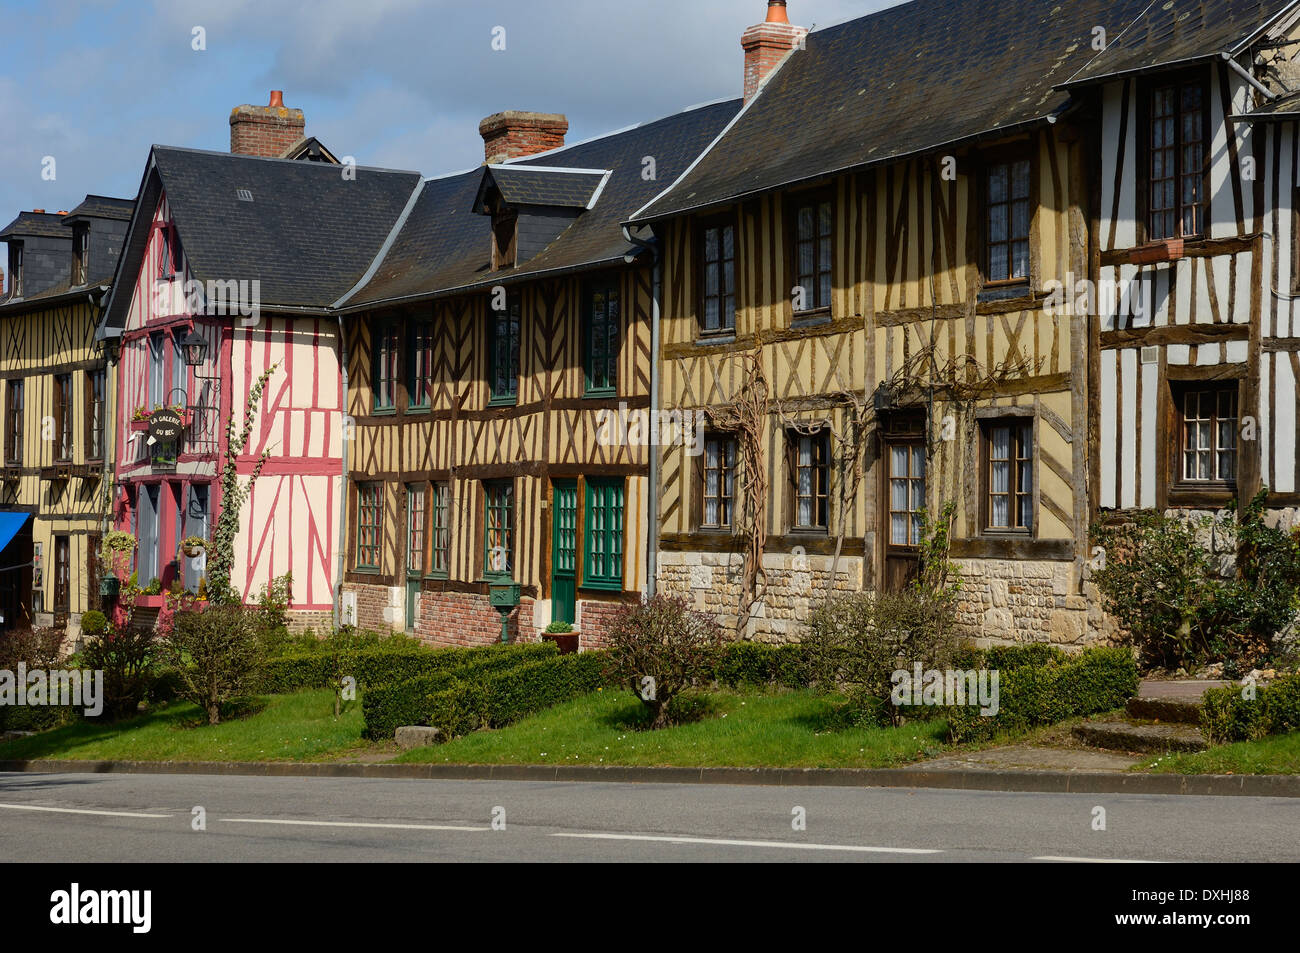 Le Bec-Hellouin village. Haute-Normandie region in northern France - Stock Image